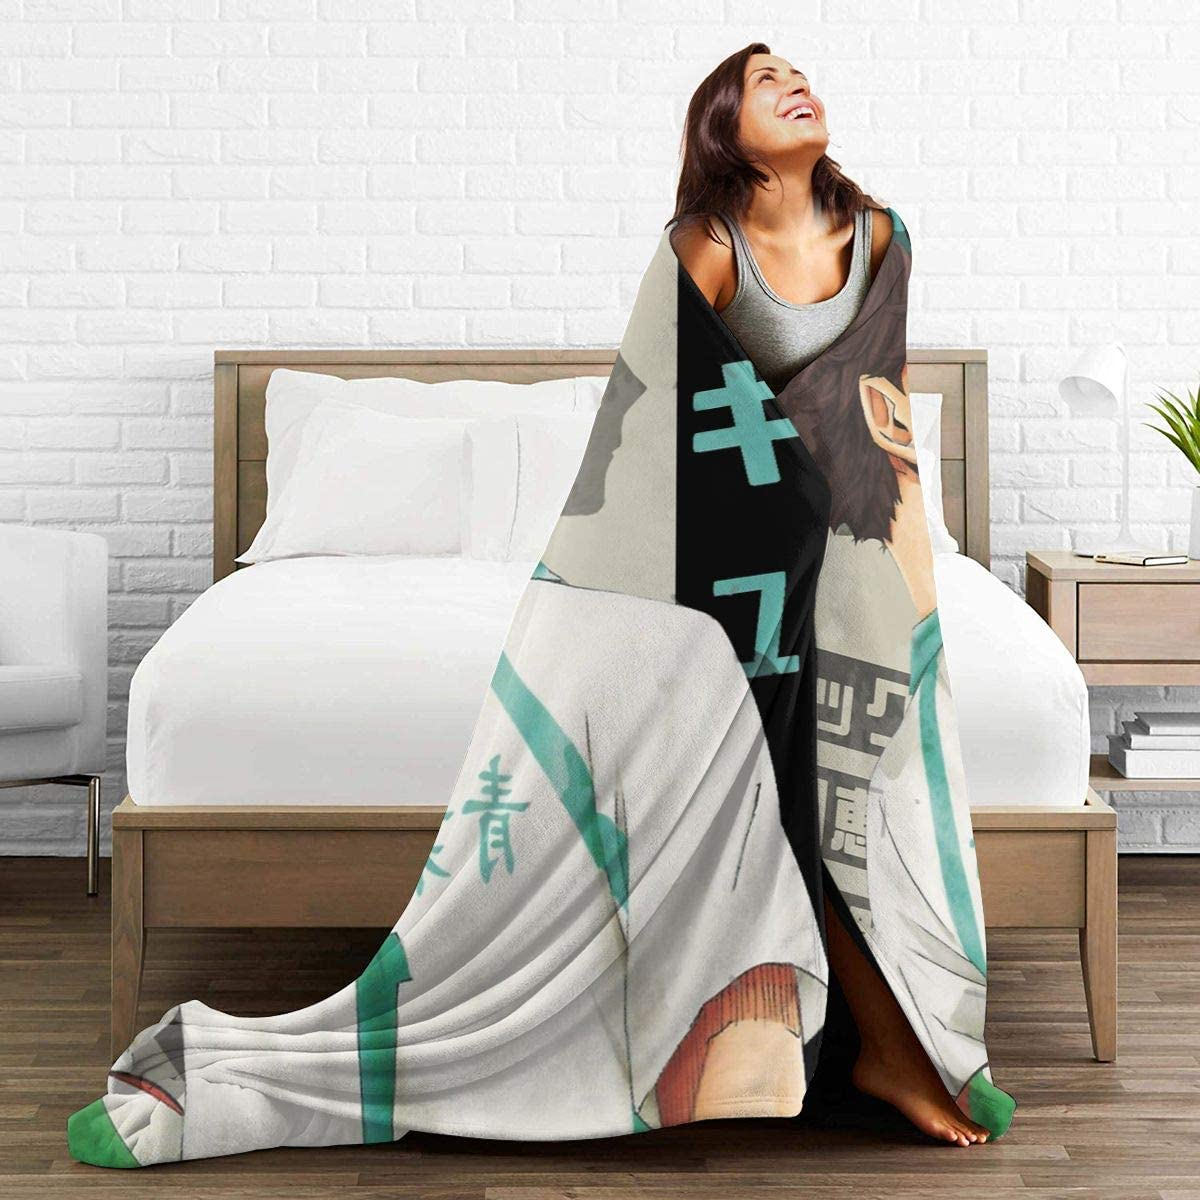 Super Soft Light Weight Throw Blanket Haikyuu Tooru Oikawa Summer Quilt for Bed Couch Sofa 60X50 Medium for Teen